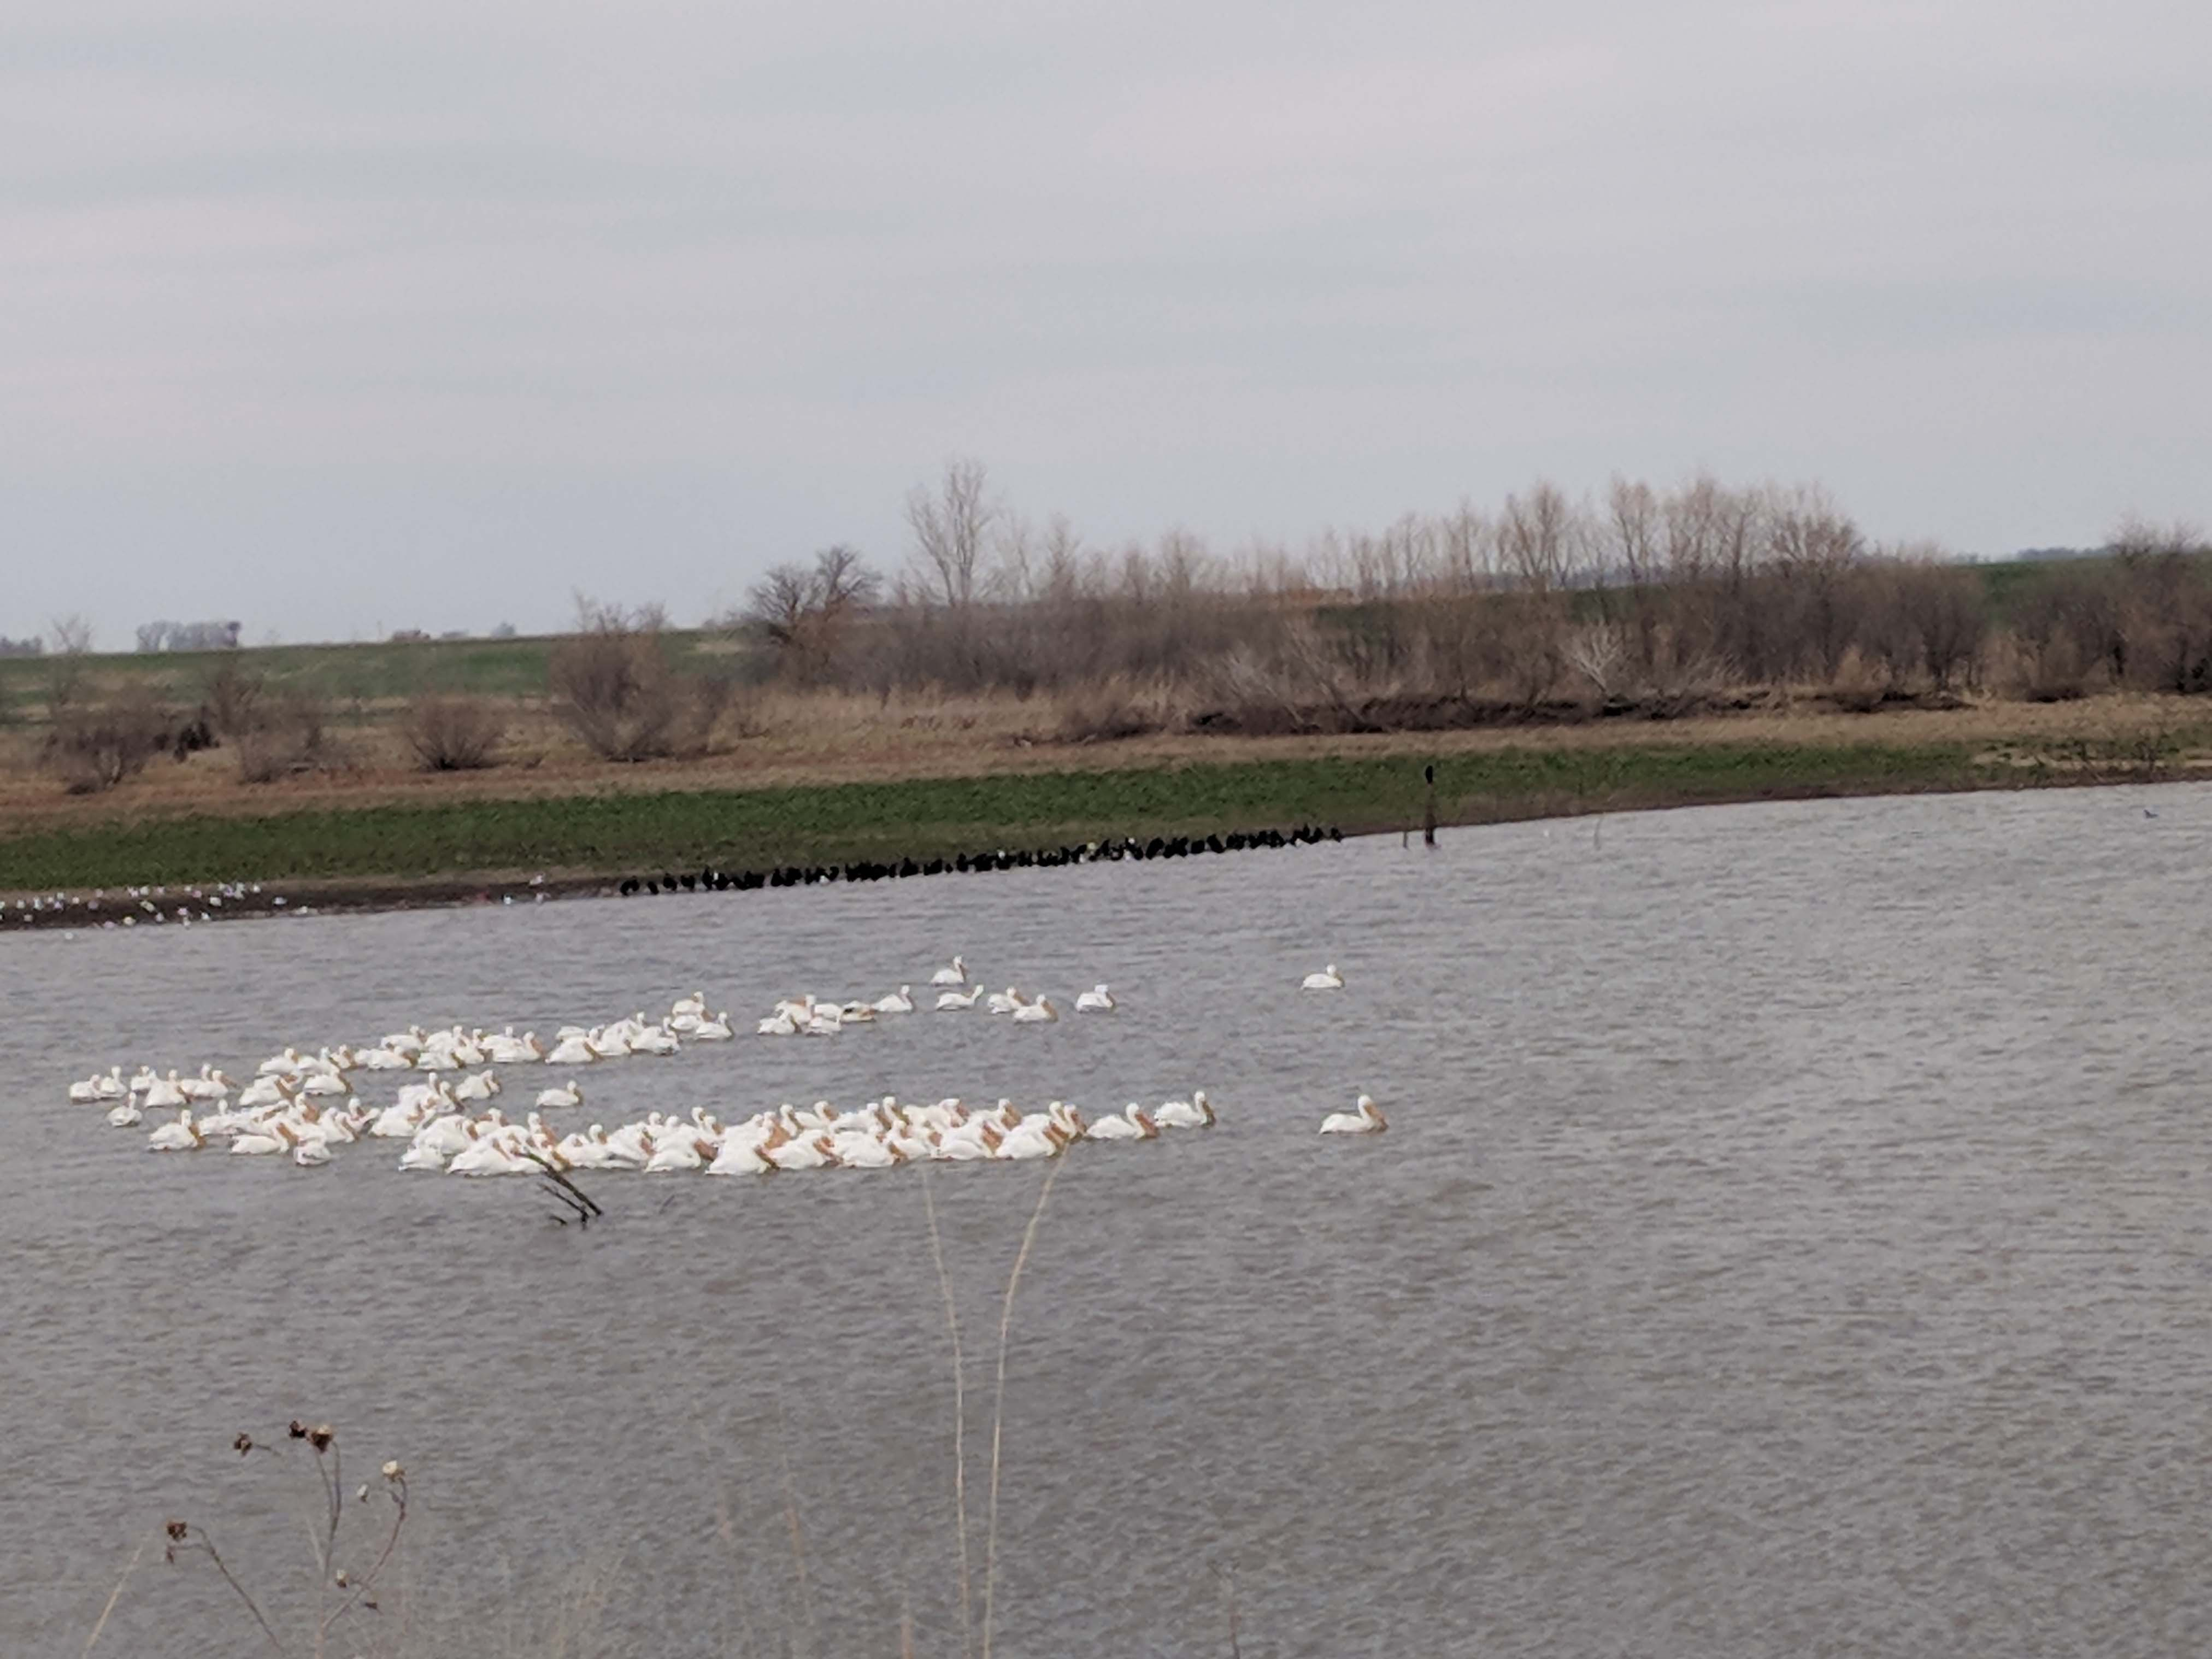 The Pelicans at Curley's Corner